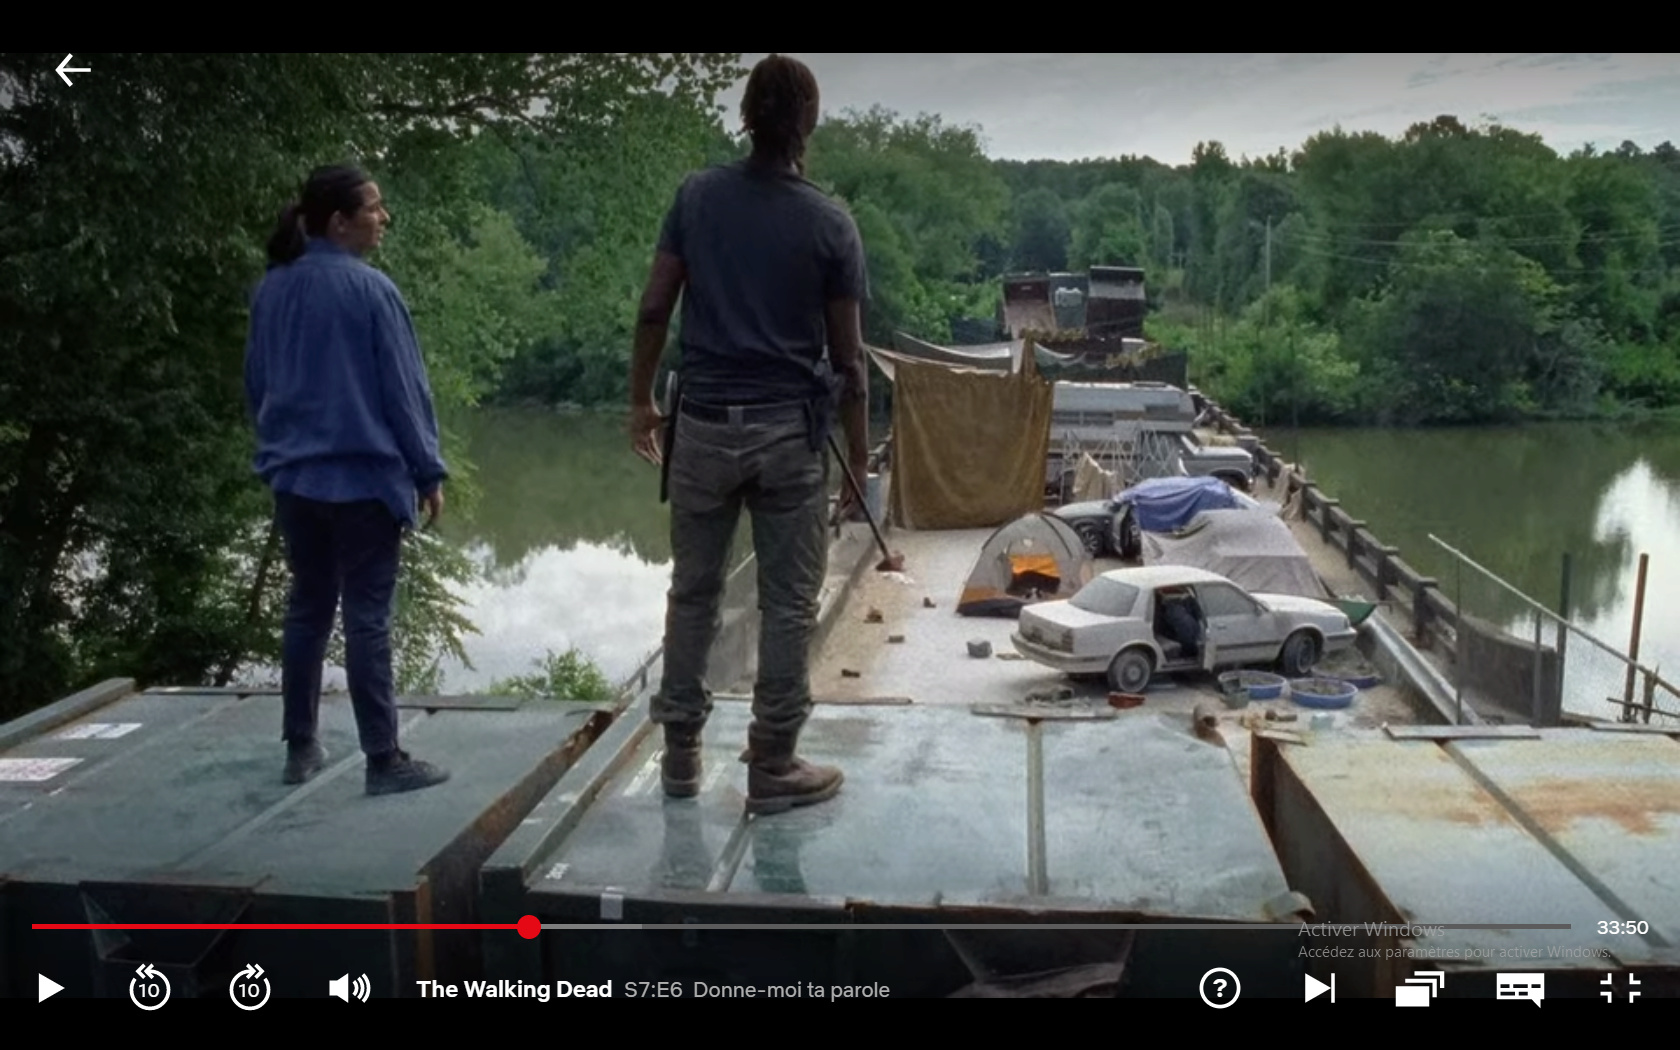 The Walking dead, storybording with Google Earth and Street View - Page 6 Captur17